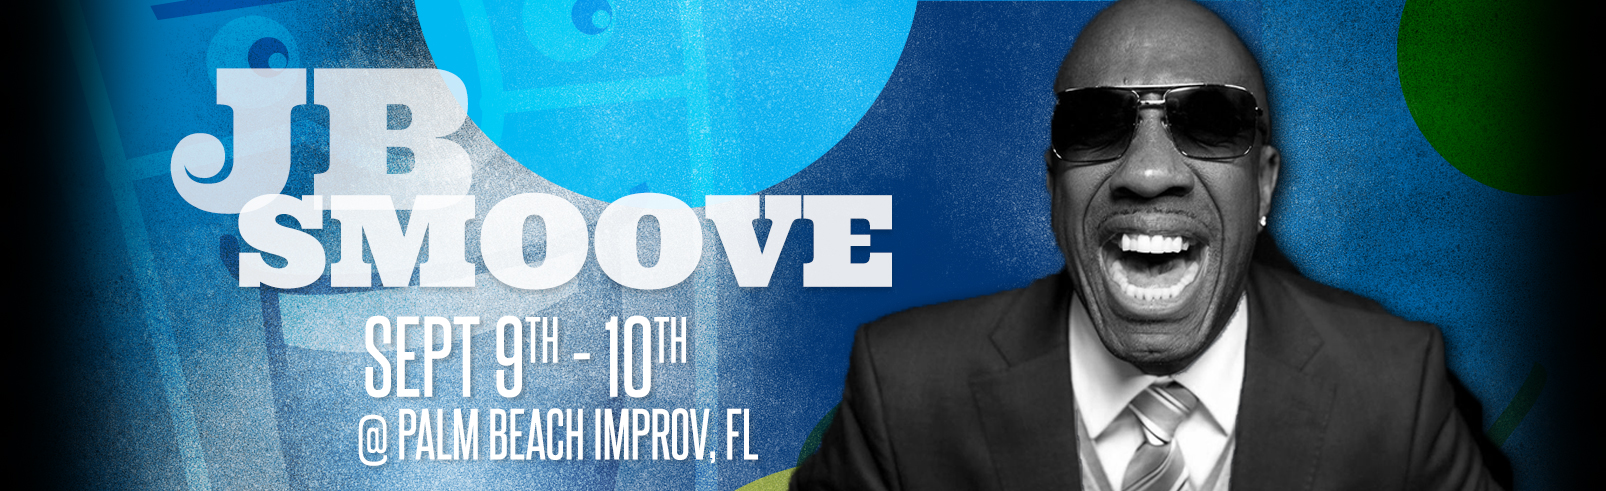 JB Smoove @ Palm Beach Improv